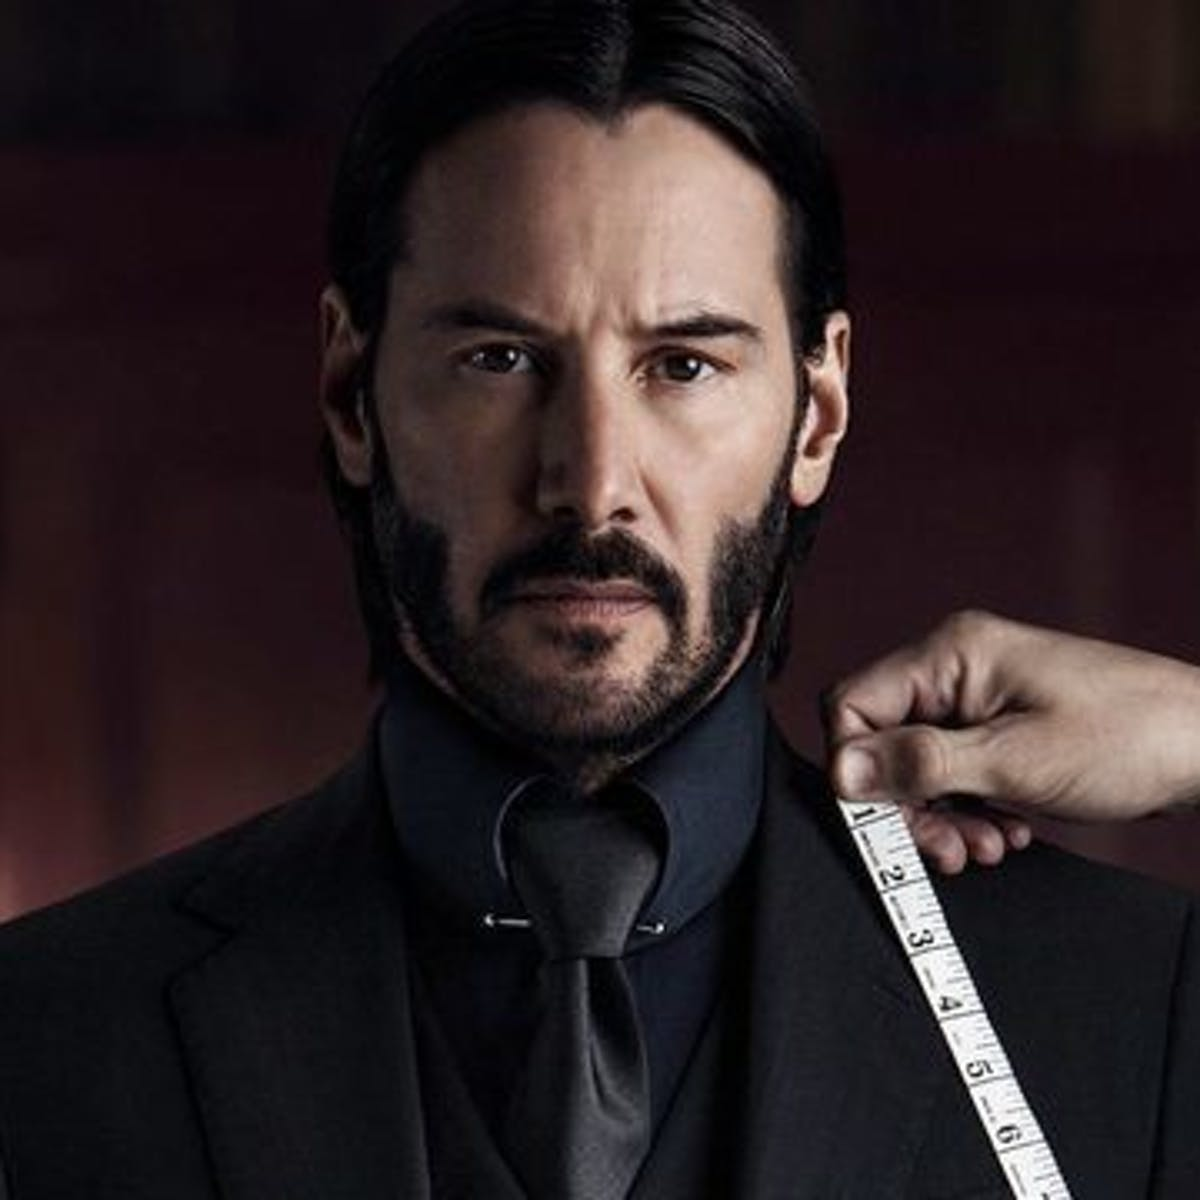 John Wick 'Ballerina' spinoff movie could ruin the franchise